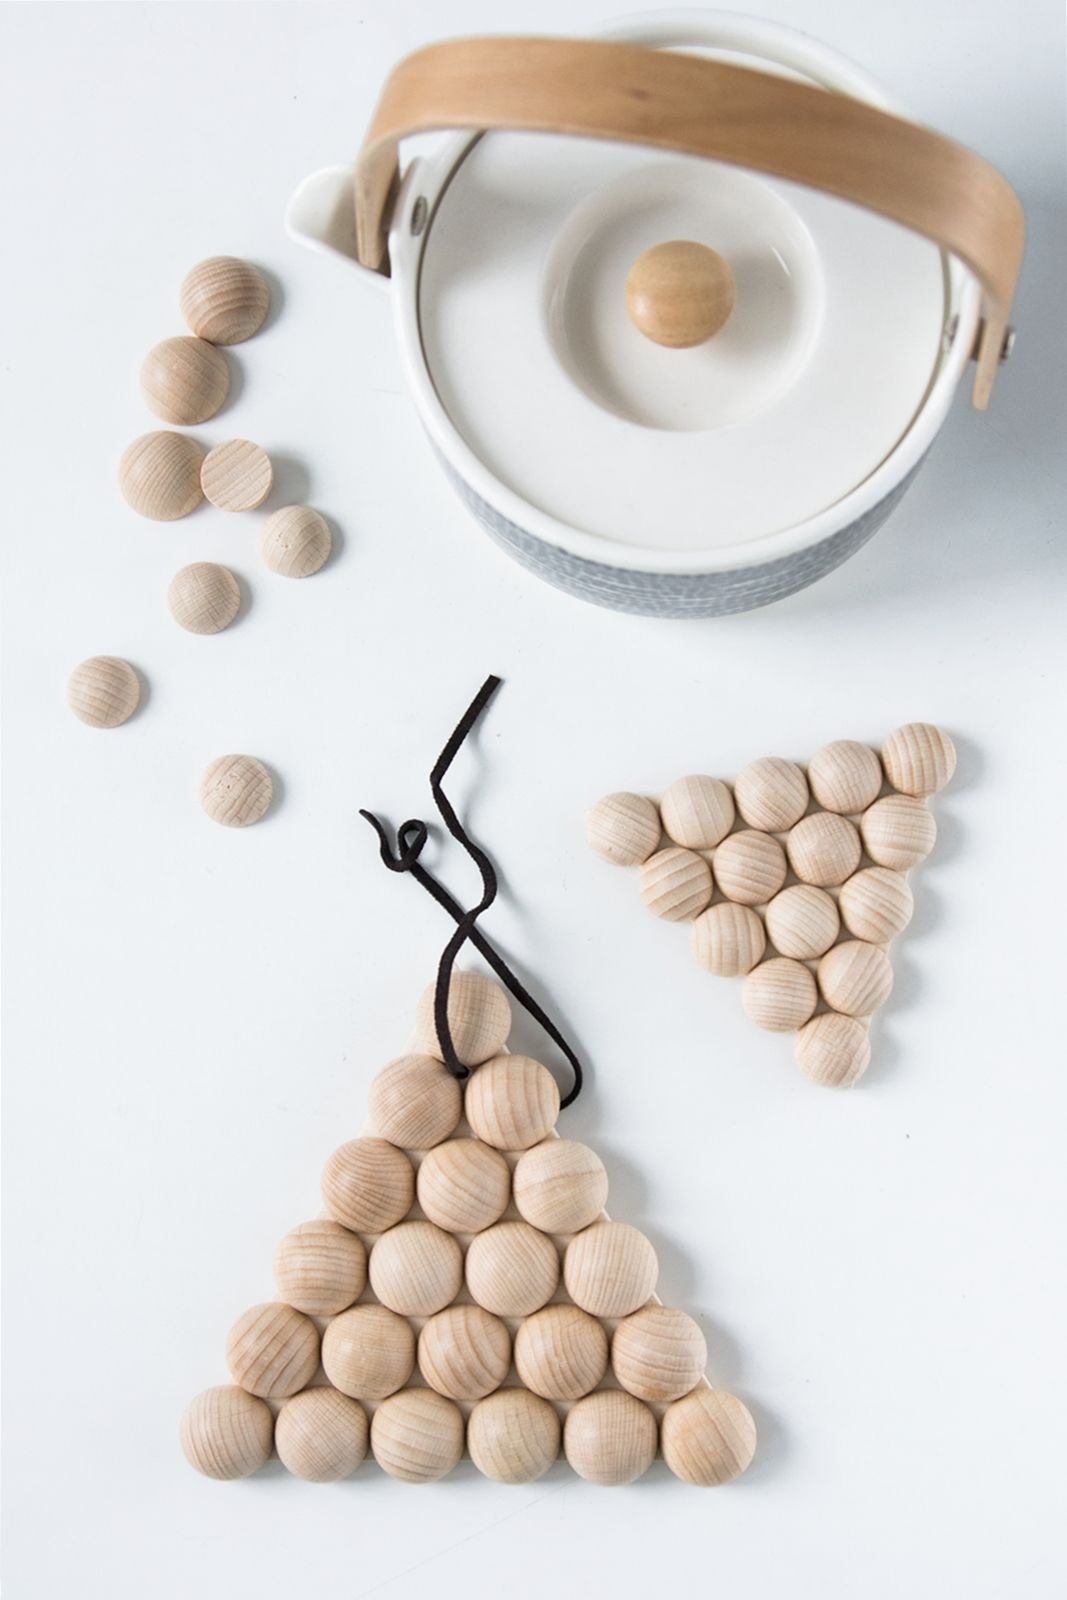 Photo of The creative DIY blog for the homely and do-it-yourself: [DIY – Quickie] Geometric coasters made of wooden balls